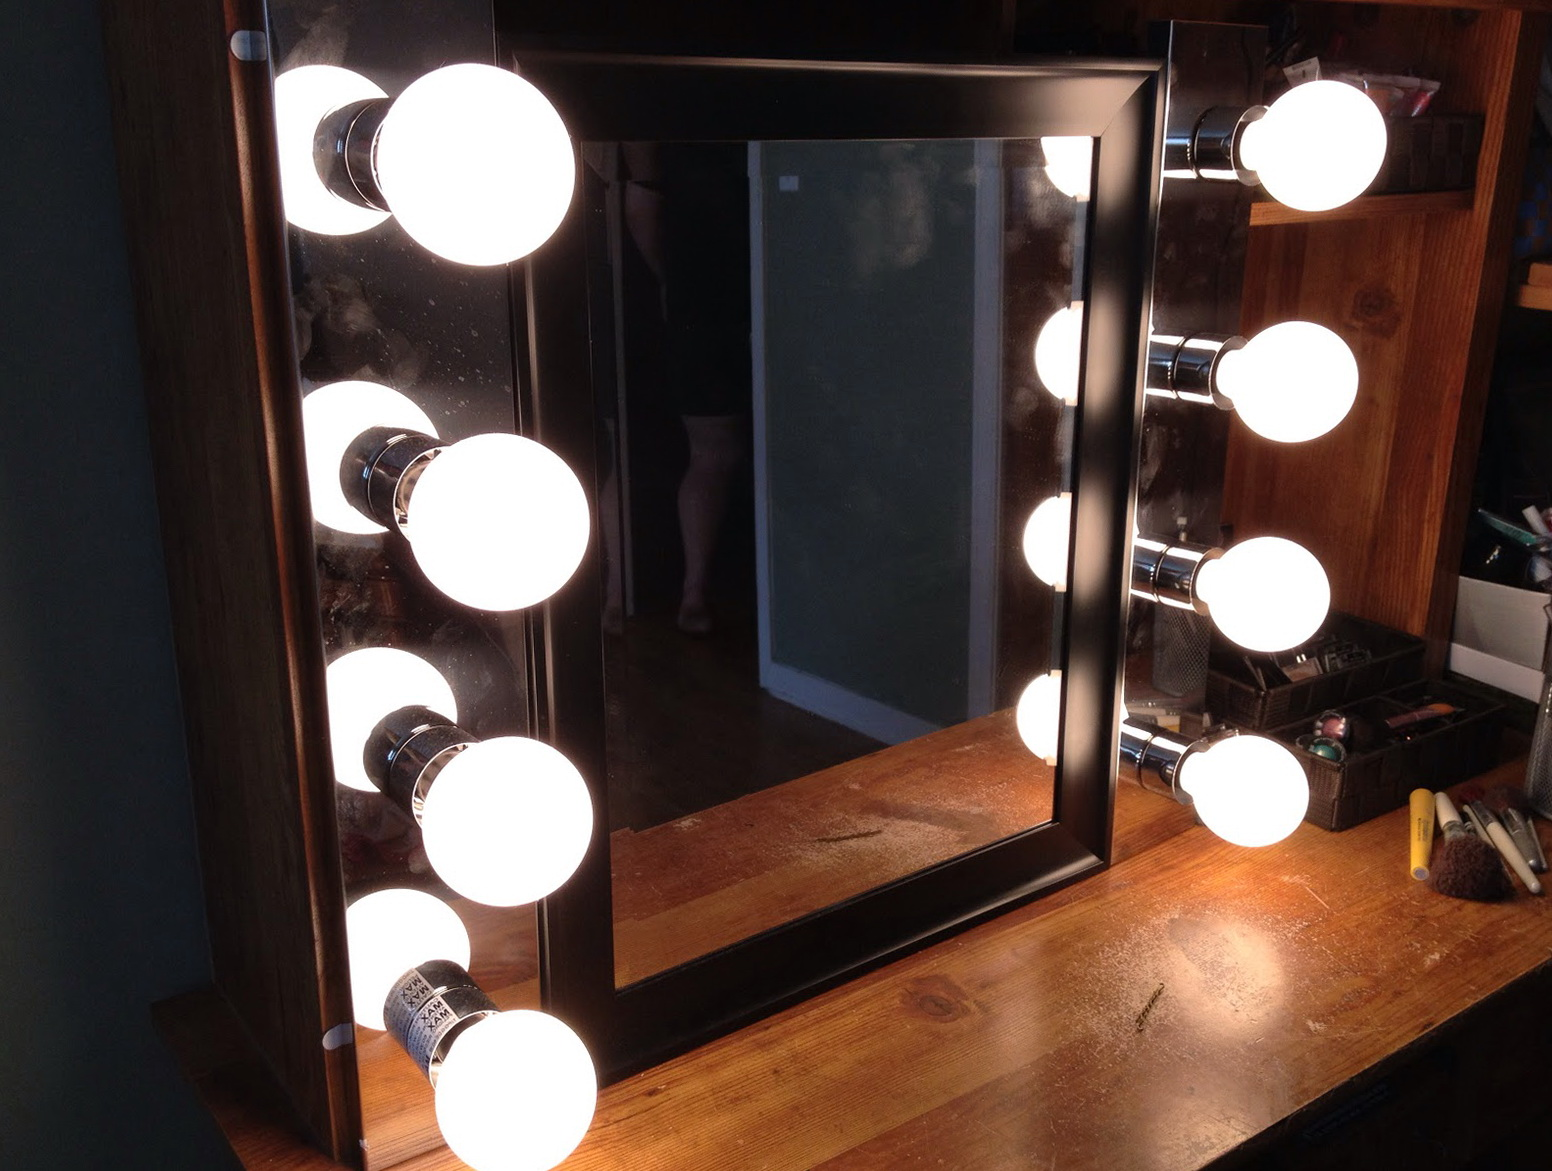 vanity mirror with light bulbs home design ideas. Black Bedroom Furniture Sets. Home Design Ideas